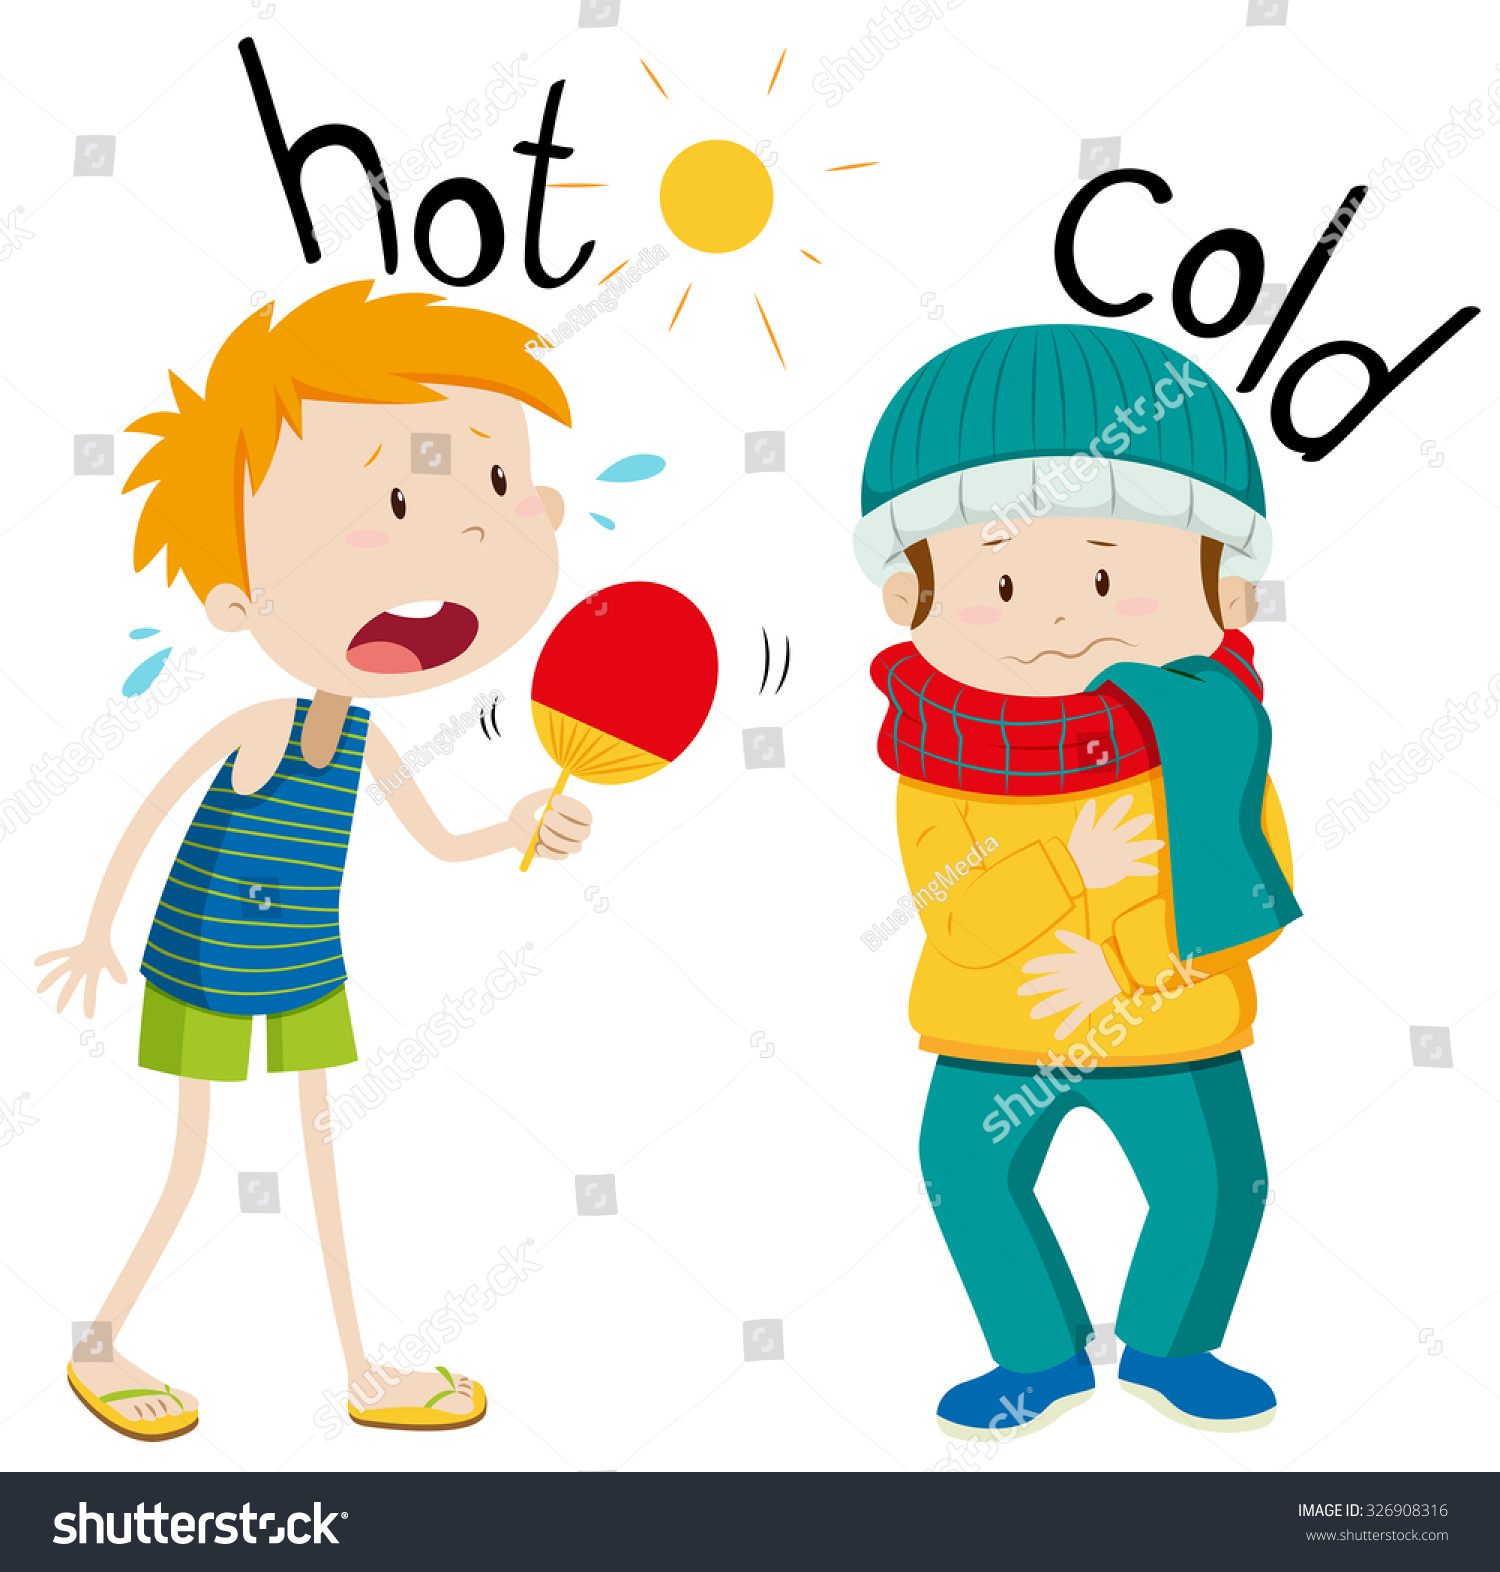 Opposite Adjectives Hot Cold Illustration Stock Vector